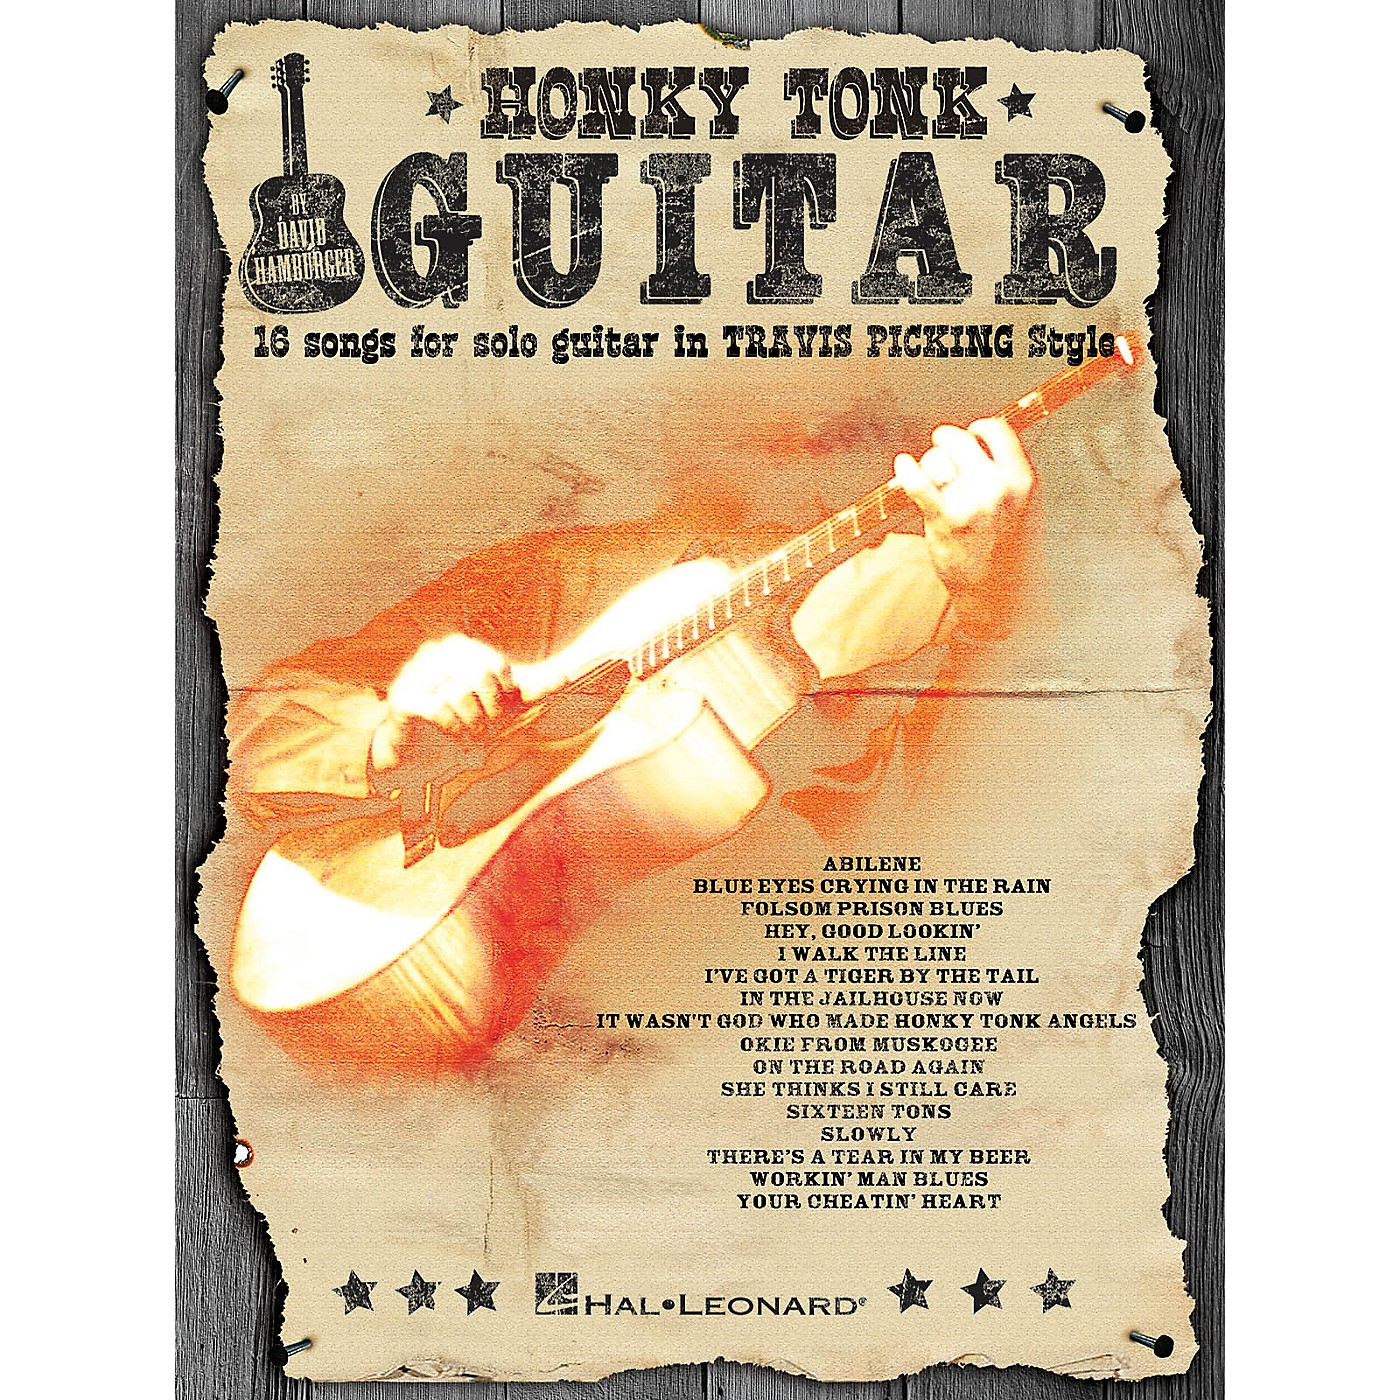 Hal Leonard Honky Tonk Guitar (16 Songs for Solo Guitar in Travis Picking Style) Guitar Solo Series Softcover thumbnail